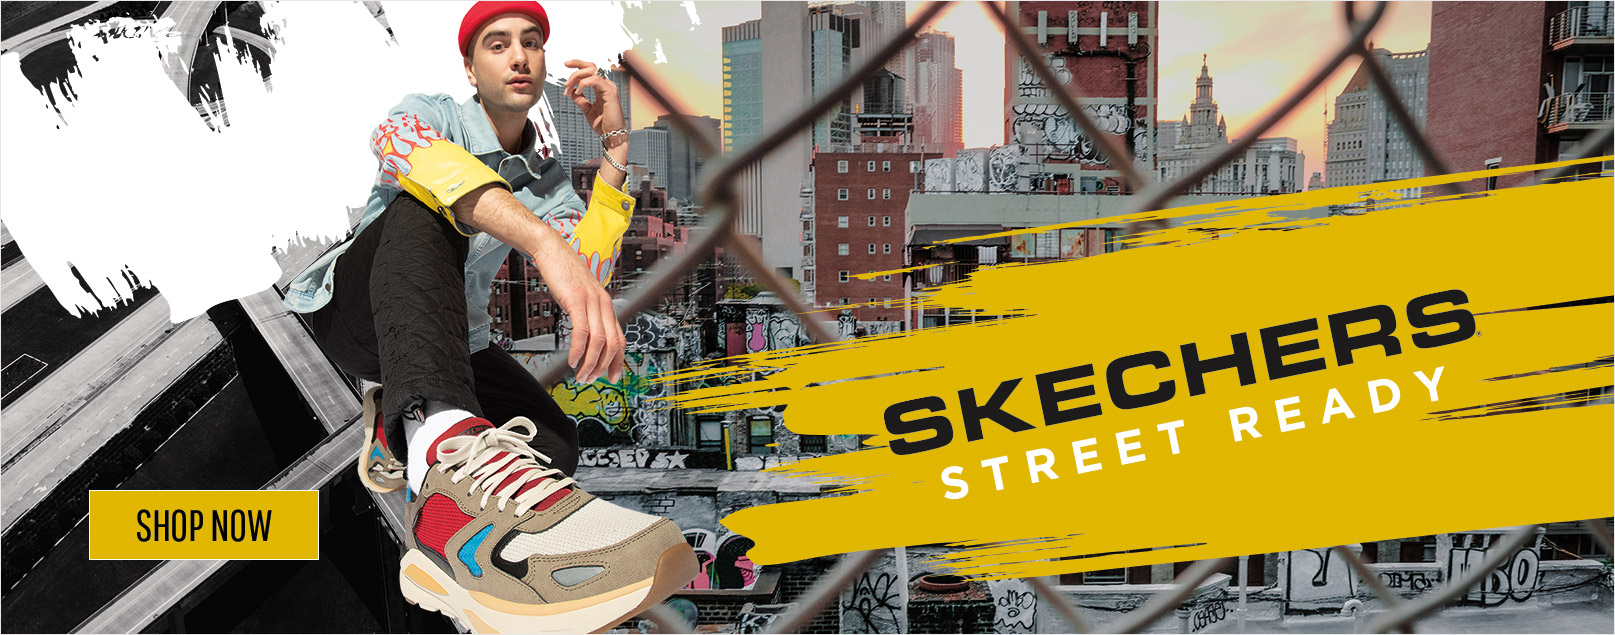 Choose some street ready style with Skechers Sport sneakers.  Classic kicks with color and refreshing style like the DLites, Stamina and Monster.